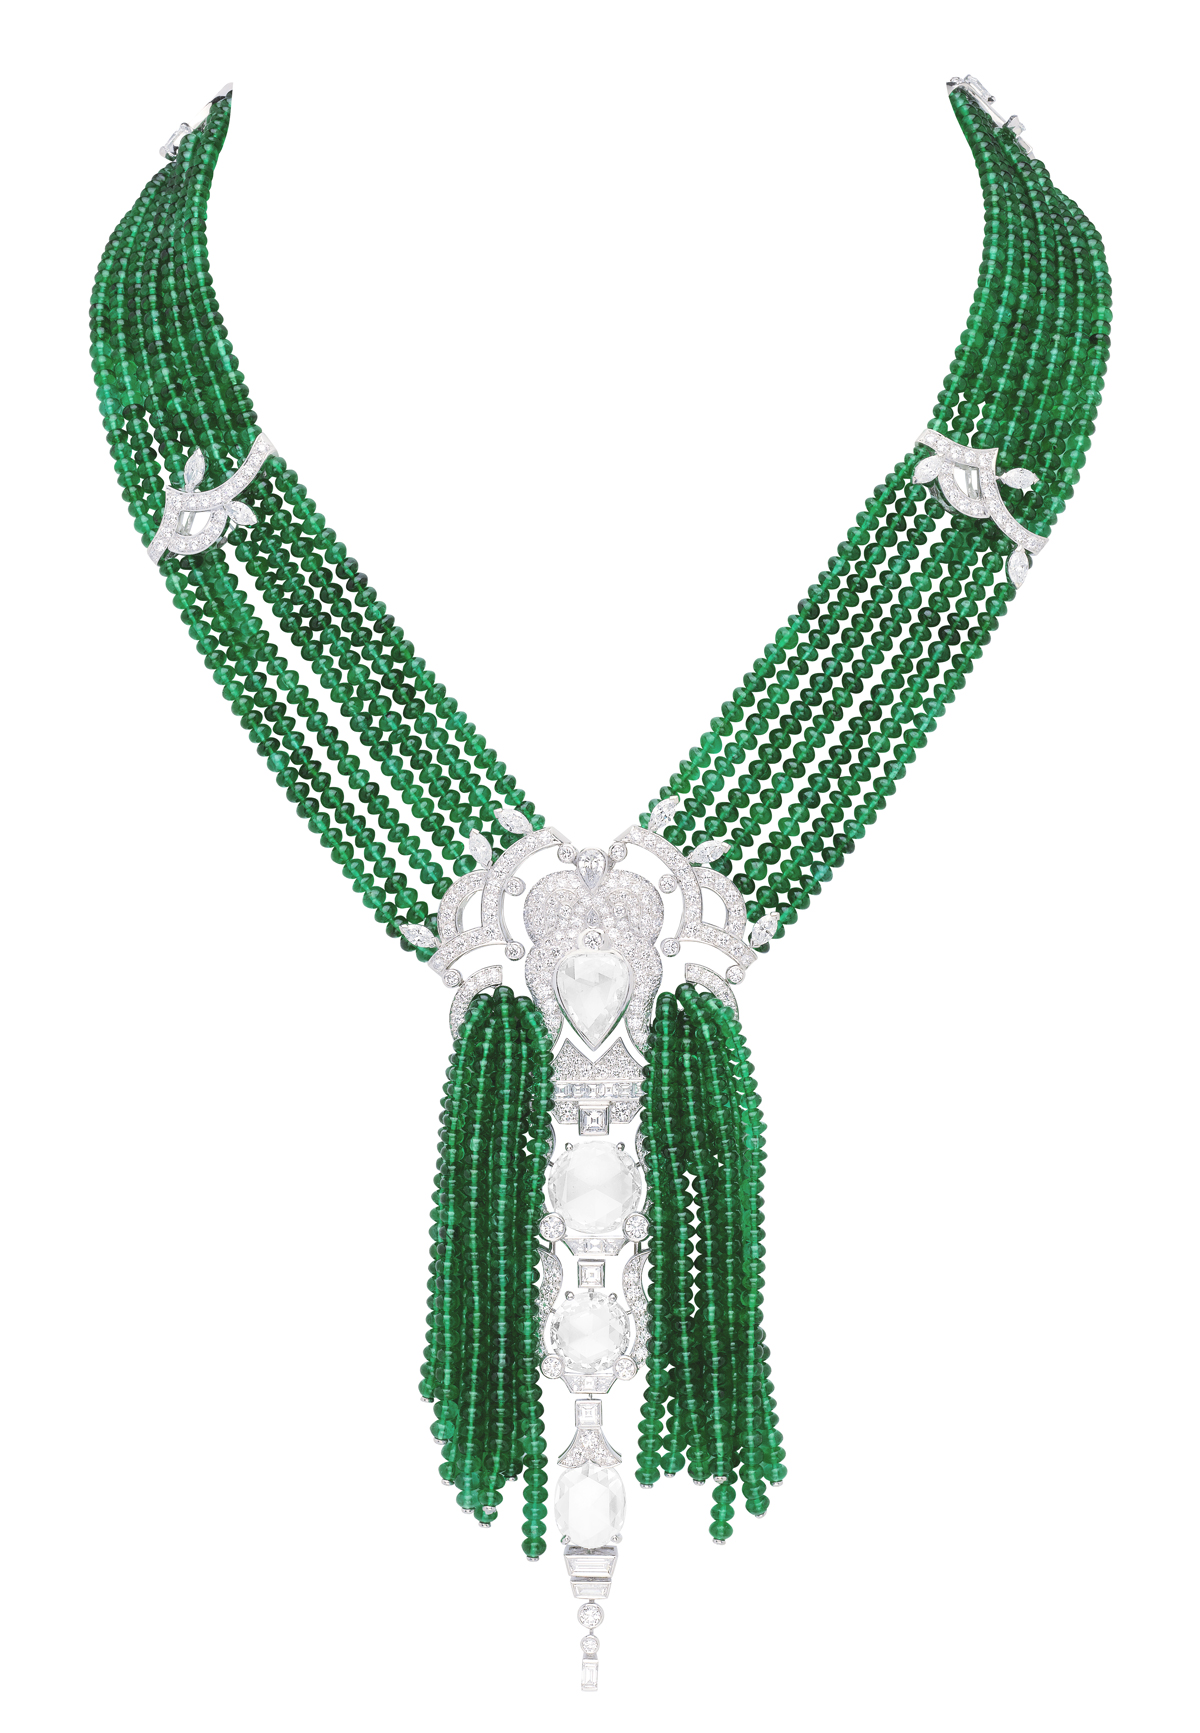 ... the pièce de résistance. Emerald and diamond earring and necklace set by Van Cleef & Arpels.